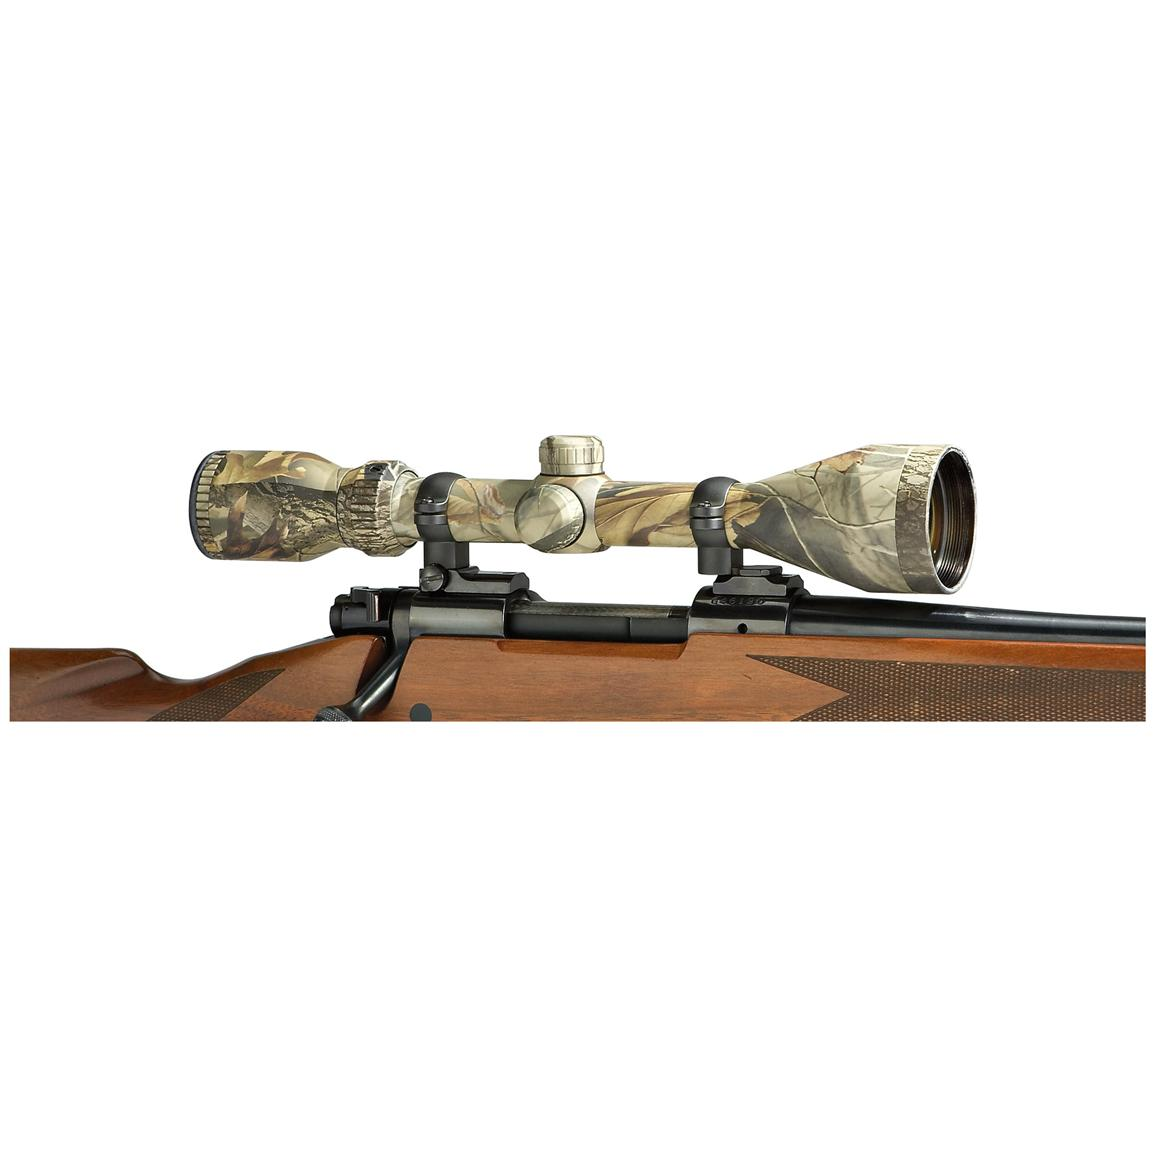 Traditions 3 9x50 Mm Circle Dot Reticle Scope Mossy